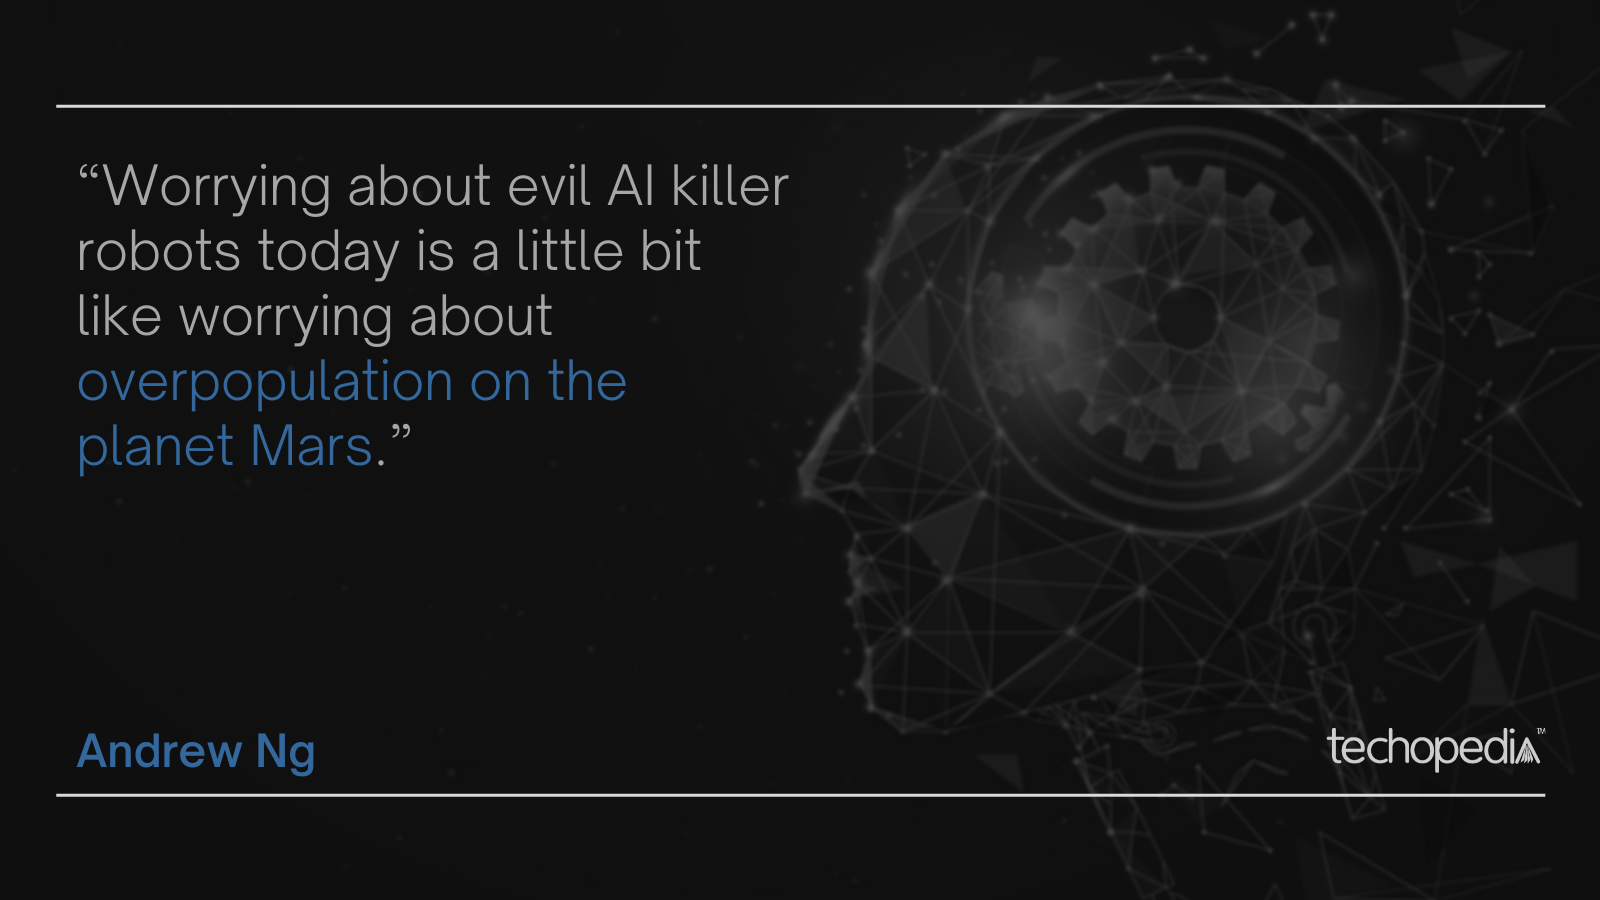 11 Quotes About AI That'll Make You Think